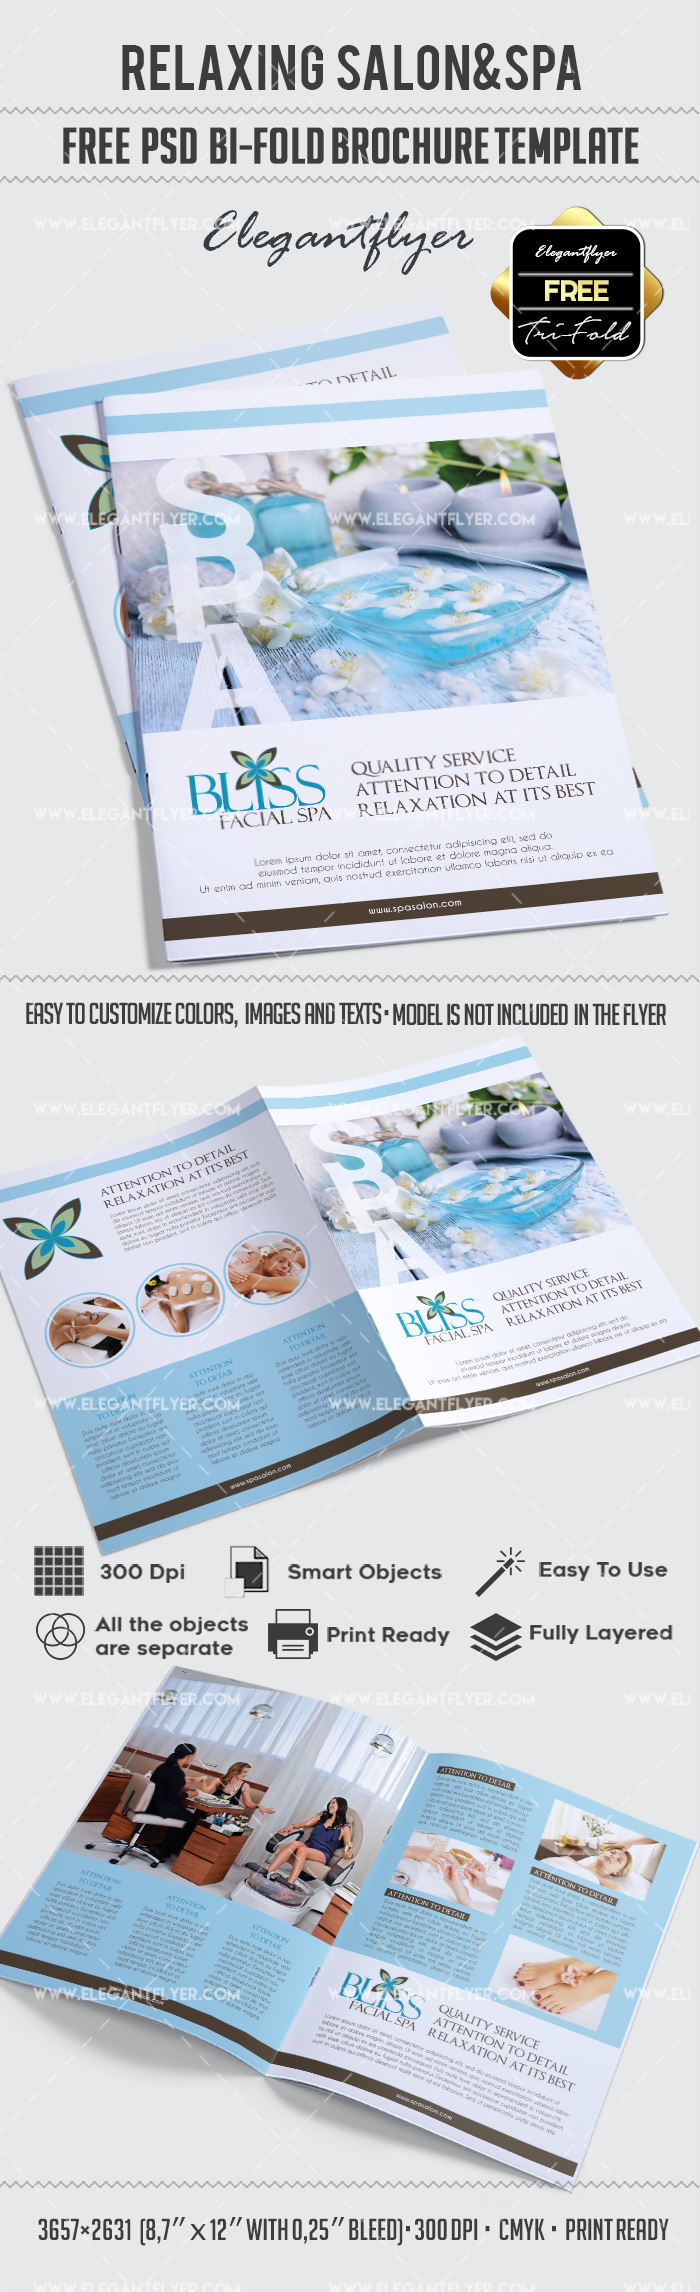 spa brochure template - free relaxing salon for bi fold psd brochure by elegantflyer